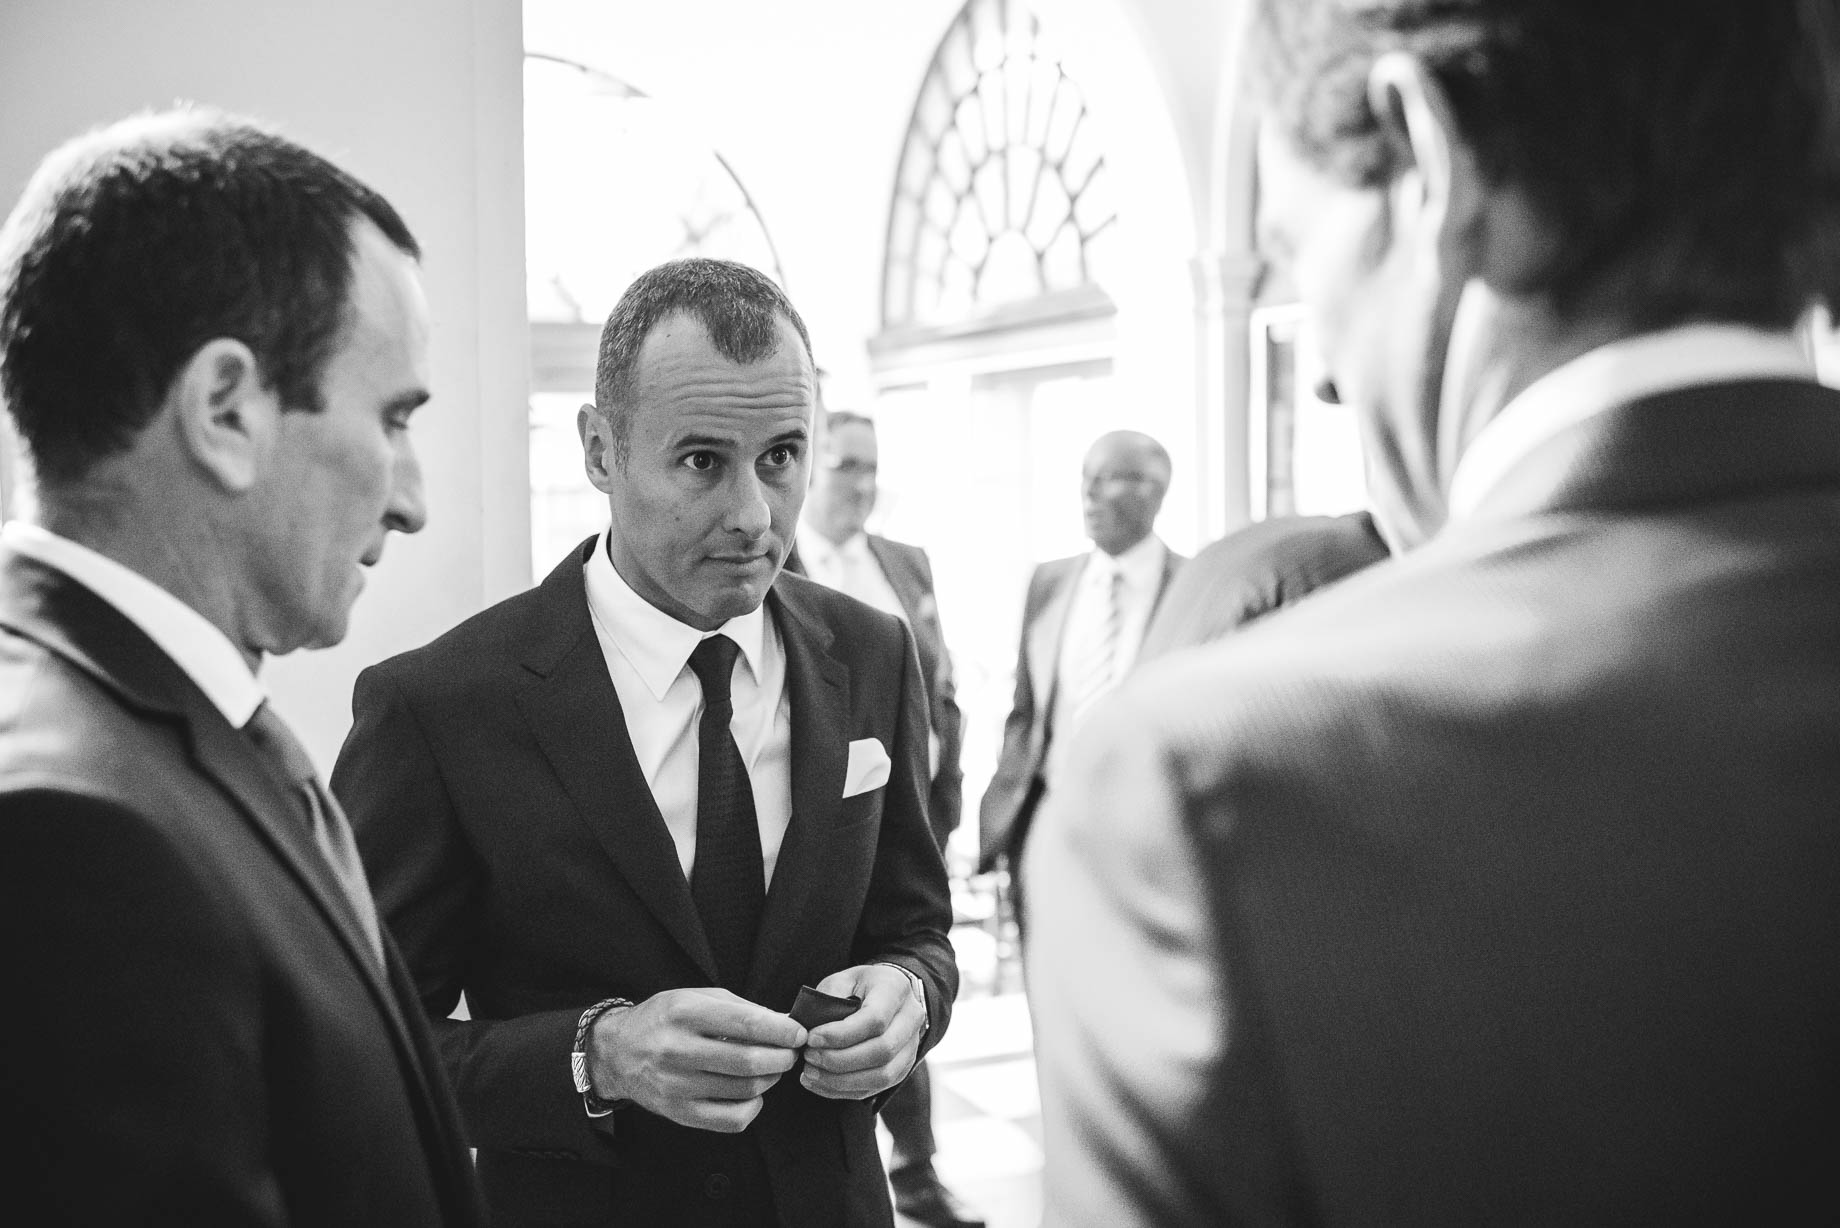 Chelsea and Mayfair wedding photography - Guy Collier - Vicki and Damien (40 of 126)